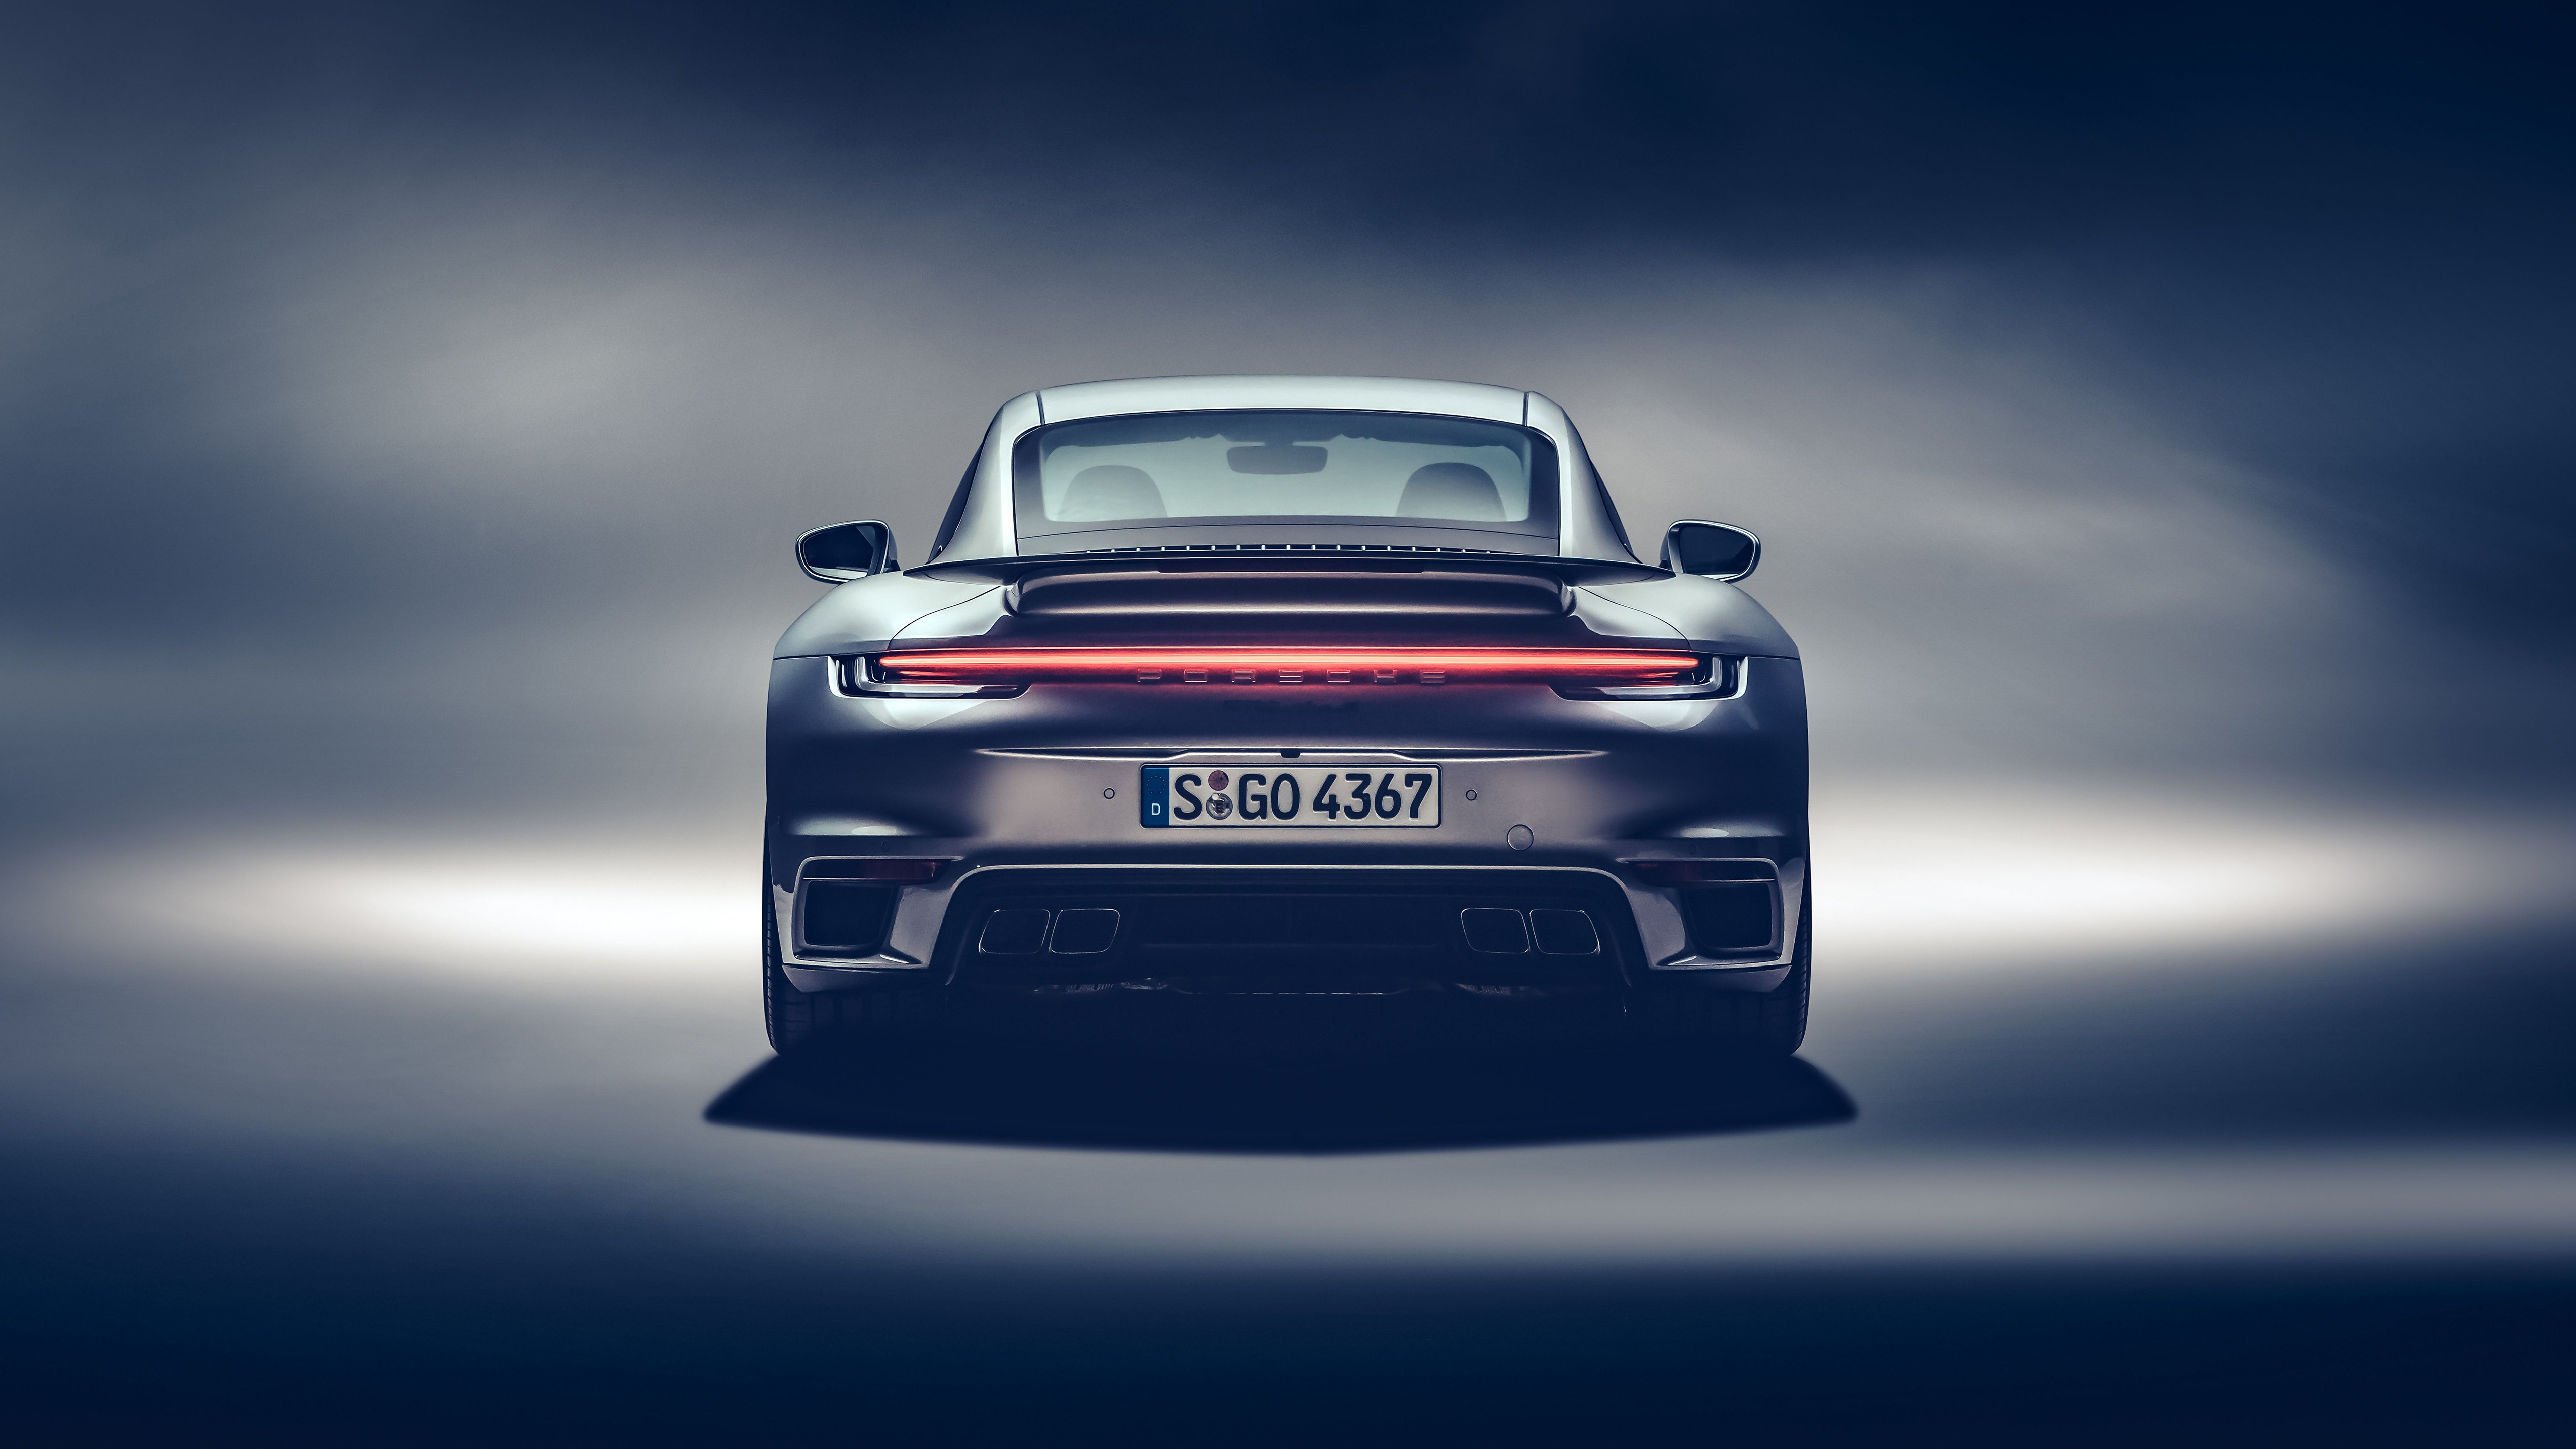 Wallpaper 2020 Porsche 911 Turbo S car rear view